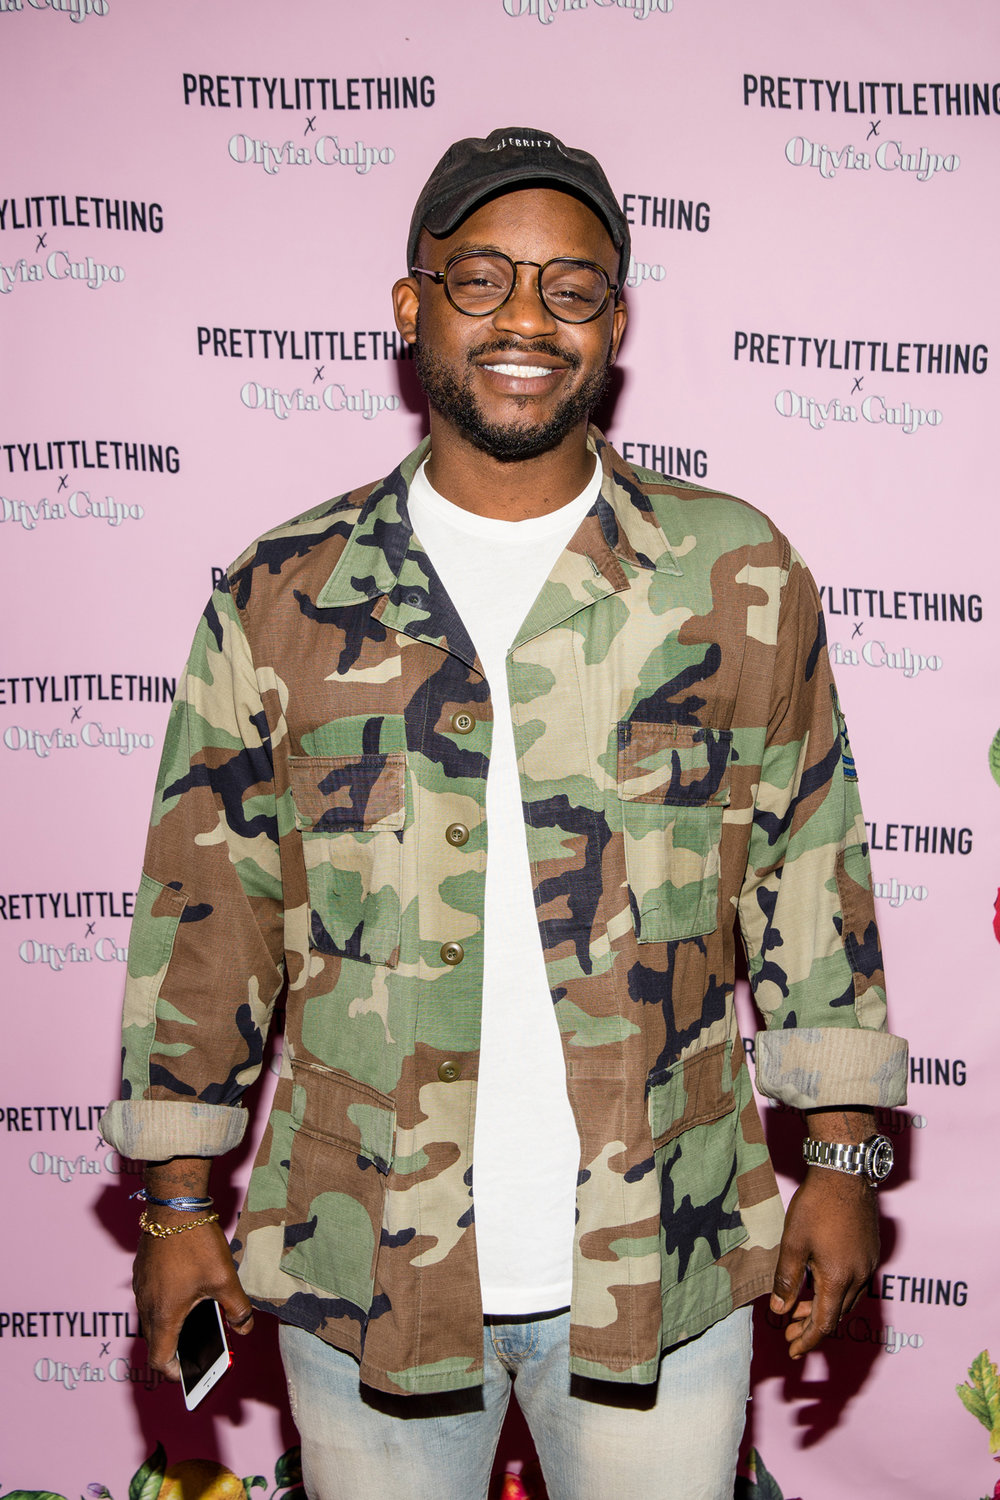 PrettyLittleThing PLT X Olivia Culpo Collection  Celebrity Launch Party DJ Taye James.jpg